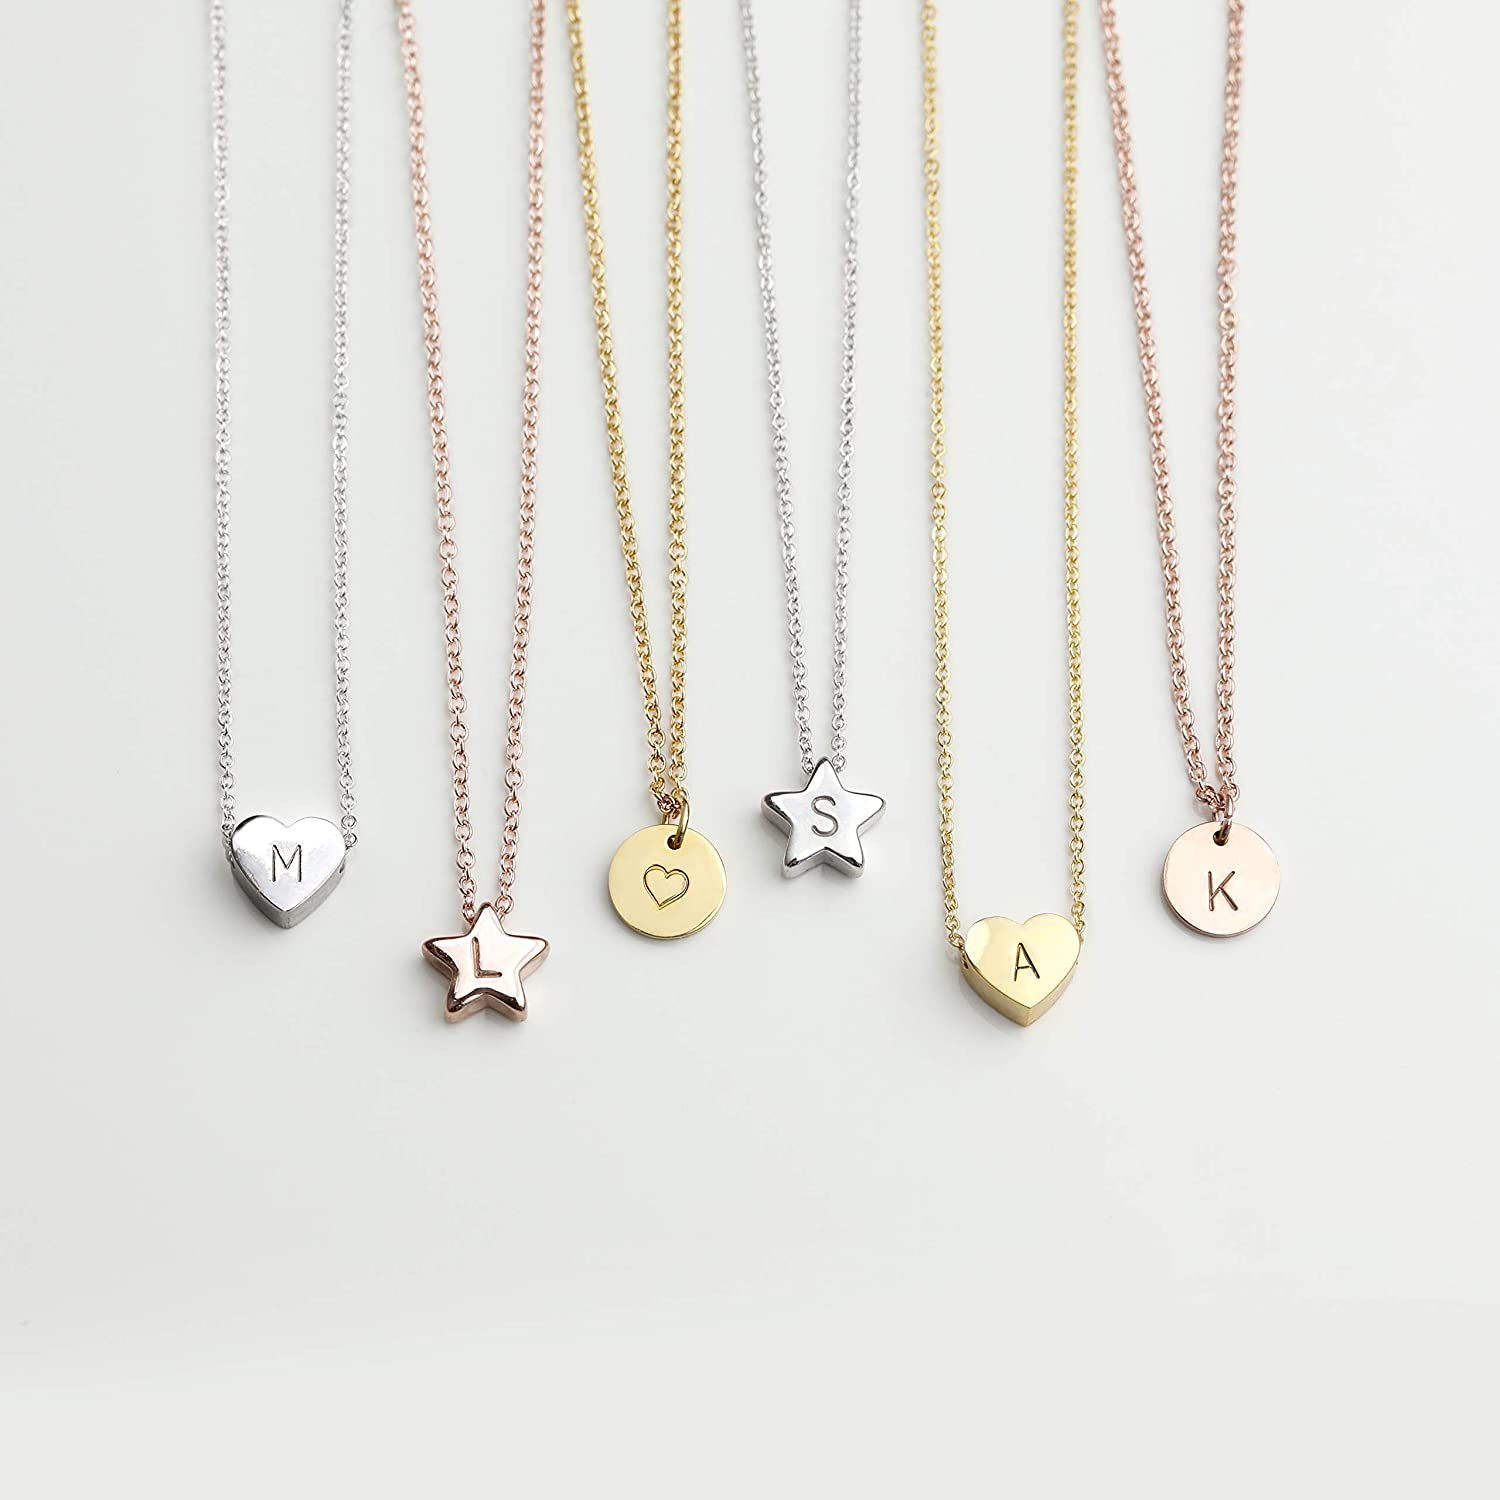 HEART STAR DISC Necklace with Initial. Personalized Necklace Baby Girl Kids Jewelry Holiday Gift Flower Girl Dainty Monogram Charm Gold Your Name Necklace - HTS